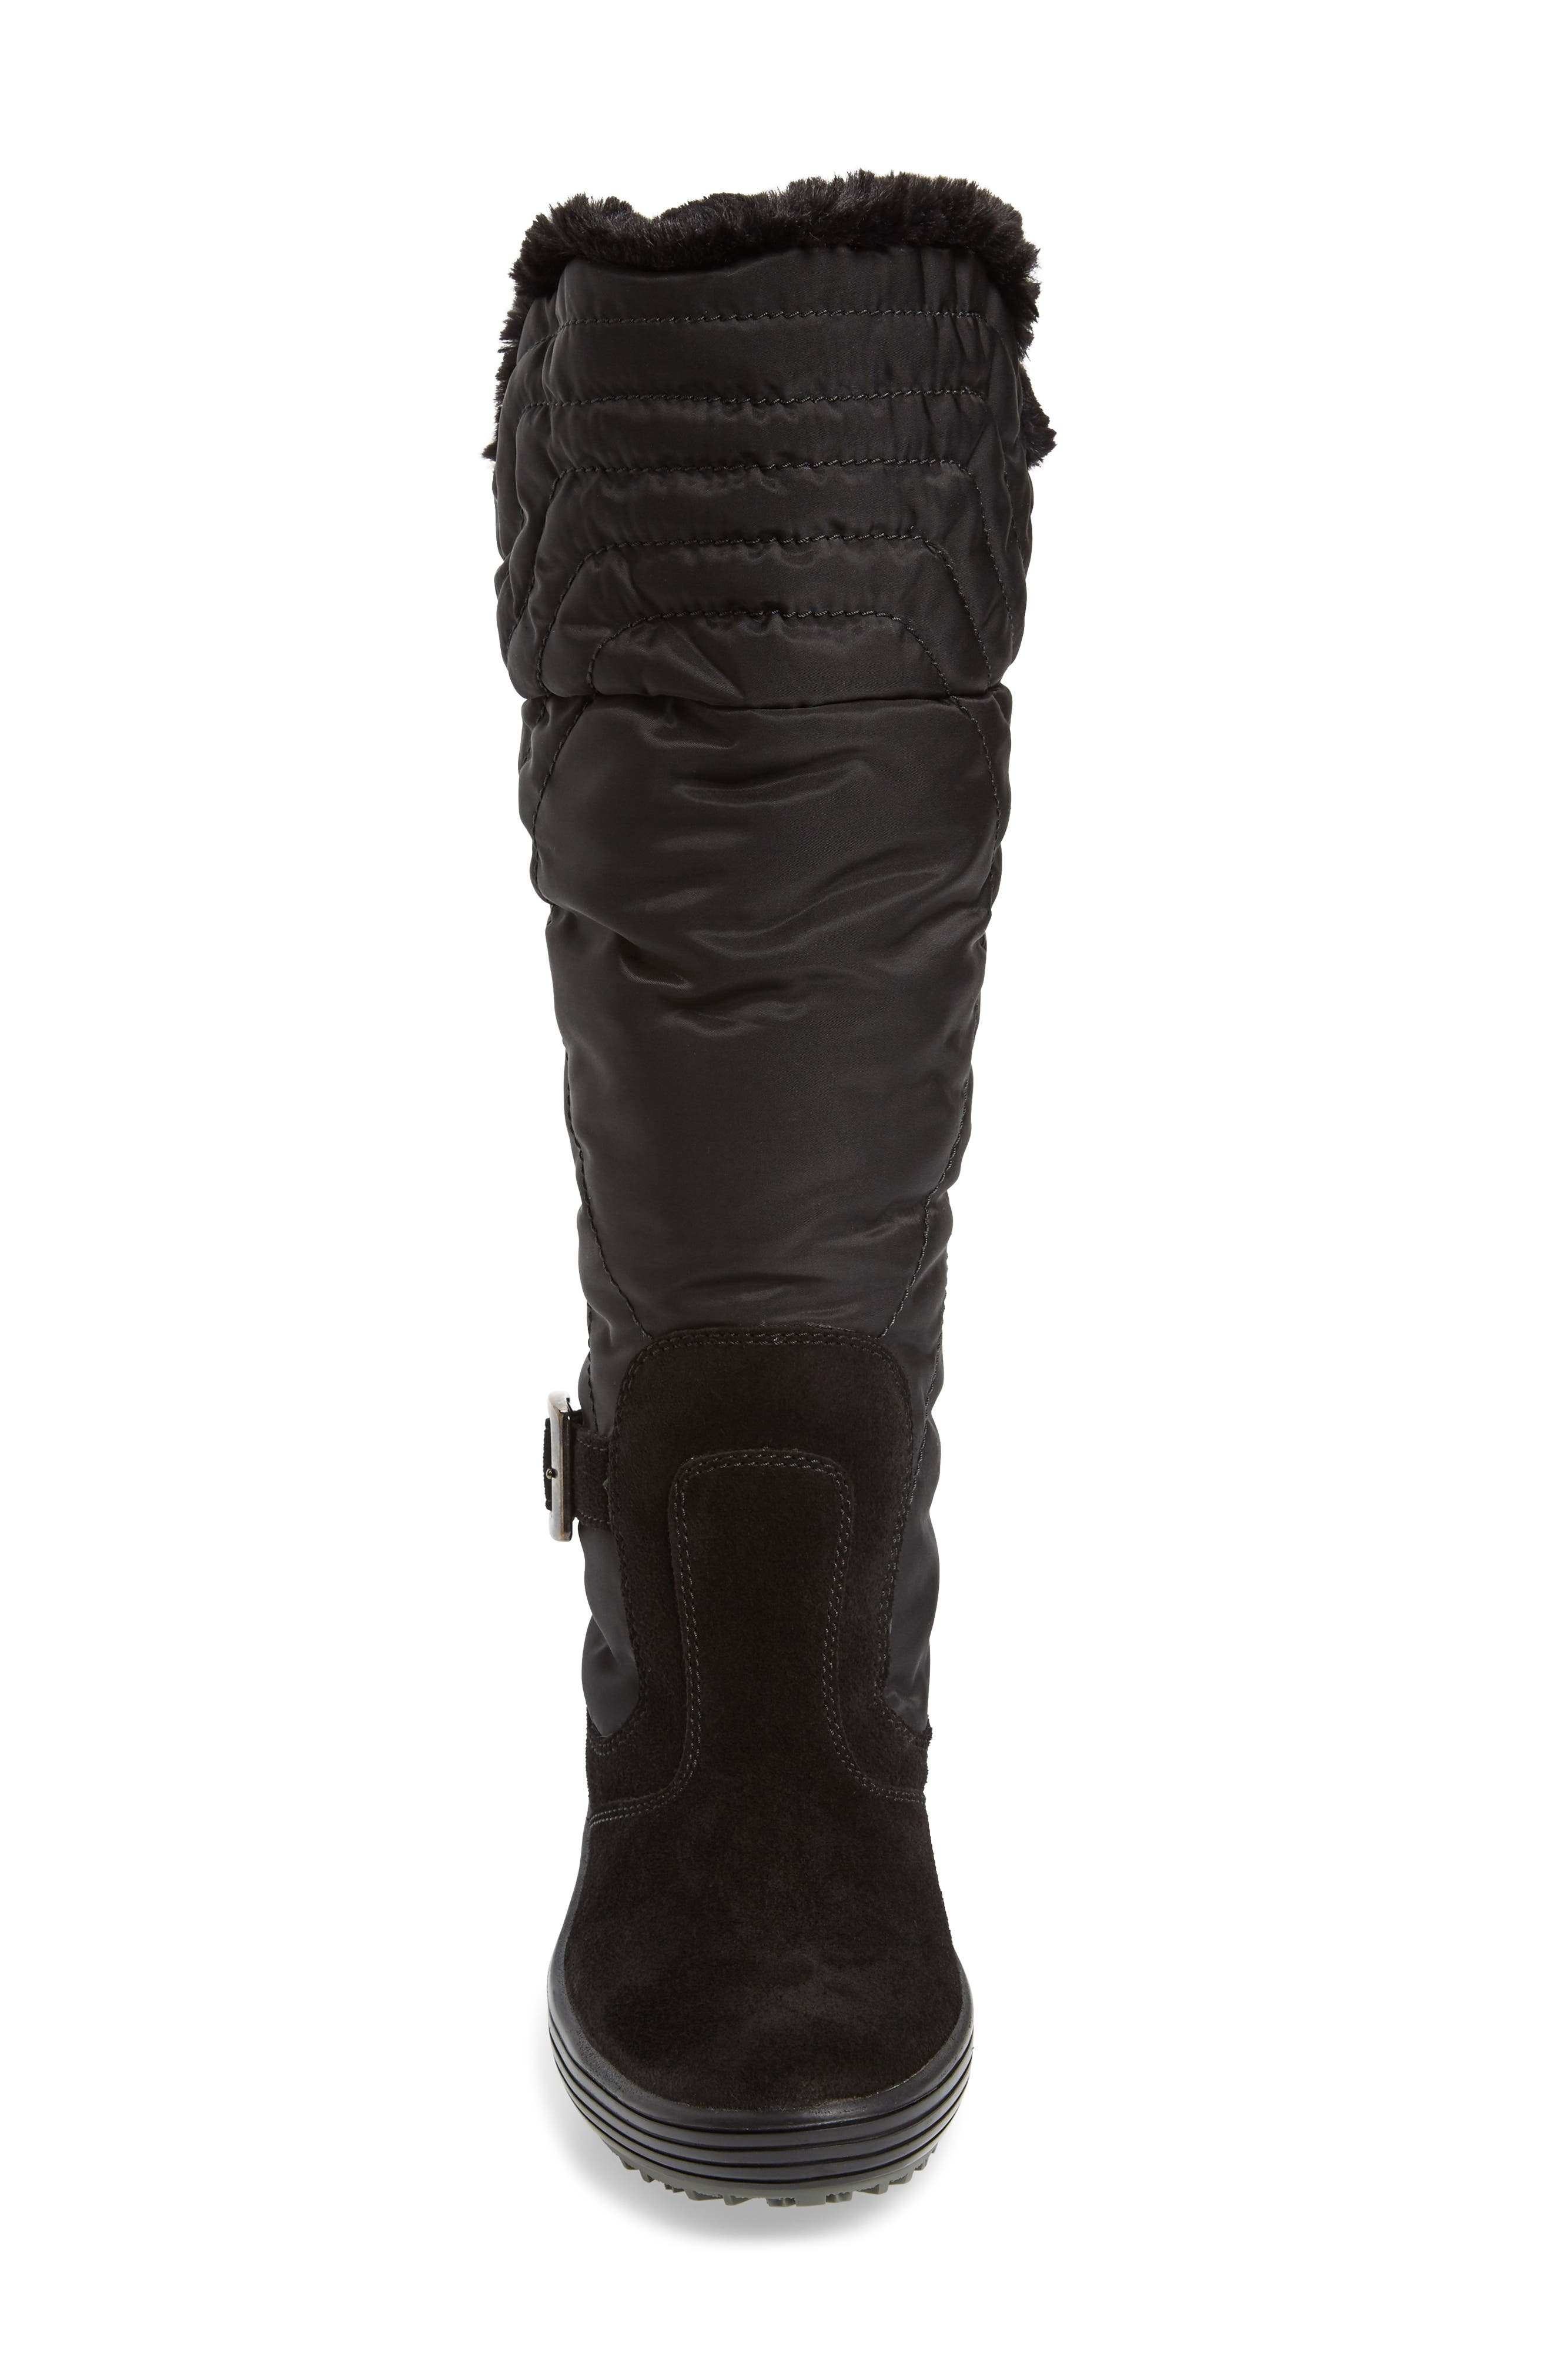 Natasha Faux Fur Lined Waterproof Boot,                             Alternate thumbnail 4, color,                             Black Suede